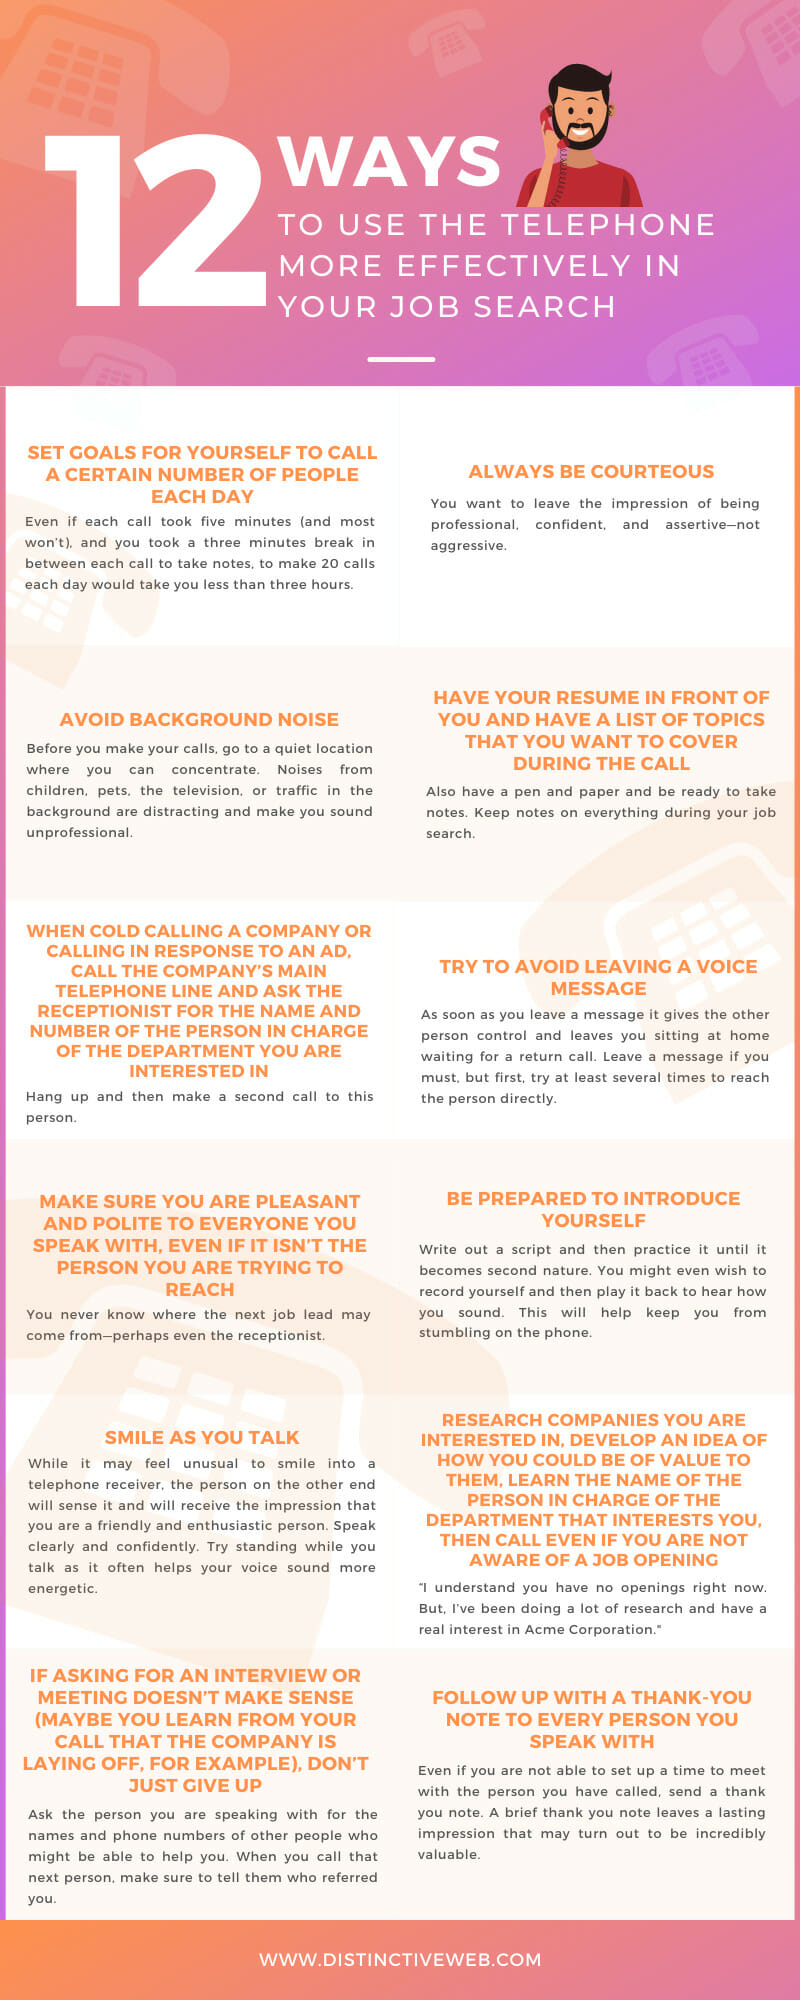 12 Ways To Use The Telephone More Effectively In Your Job Search Infographic